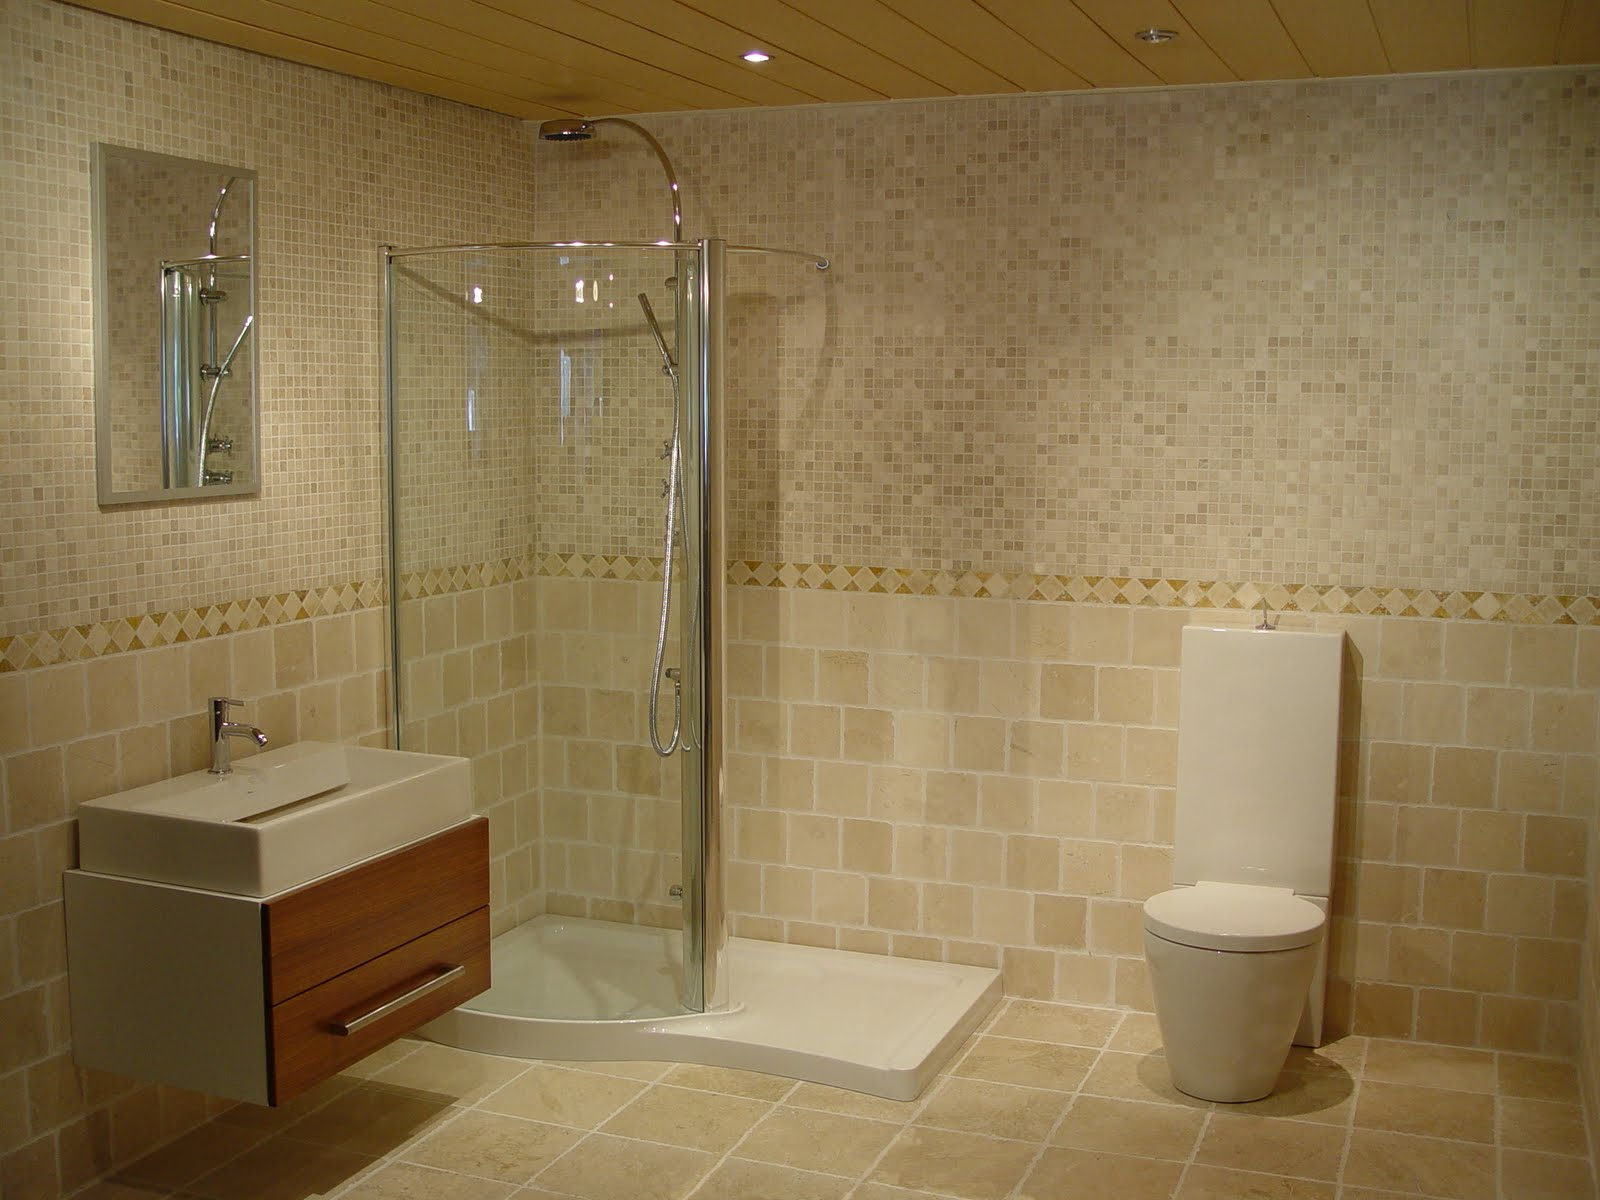 Bathroom Tiles Ideas Fascinating Of Small Bathroom Tile Ideas Photos